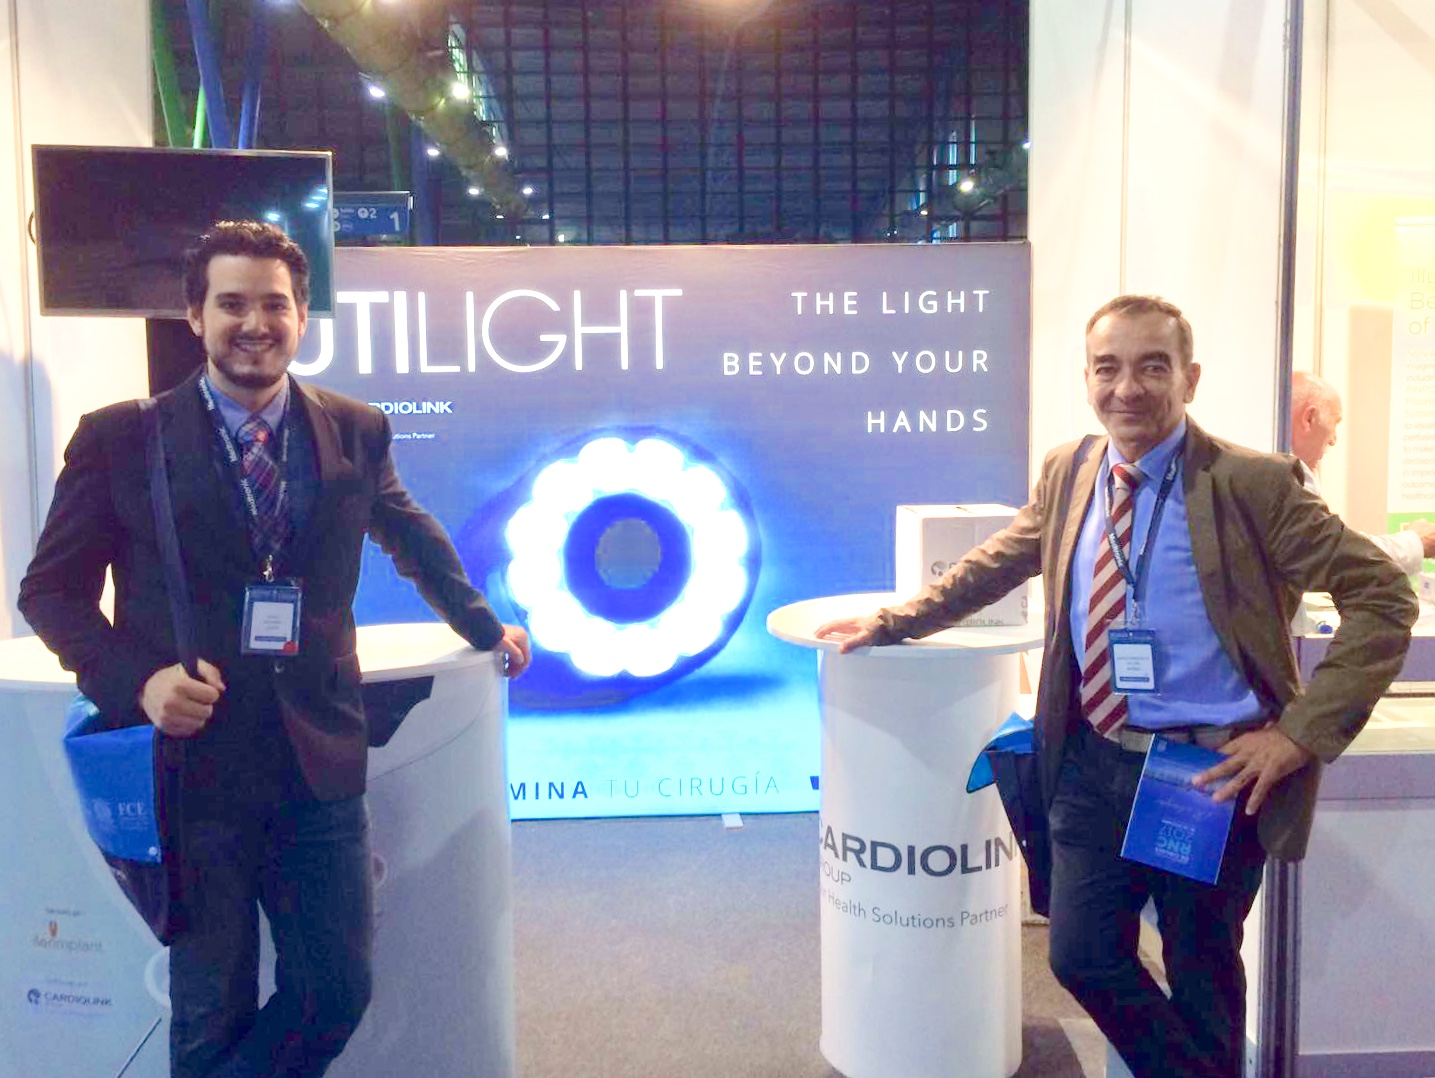 Drs. Navinés and Julian presenting Rutilight